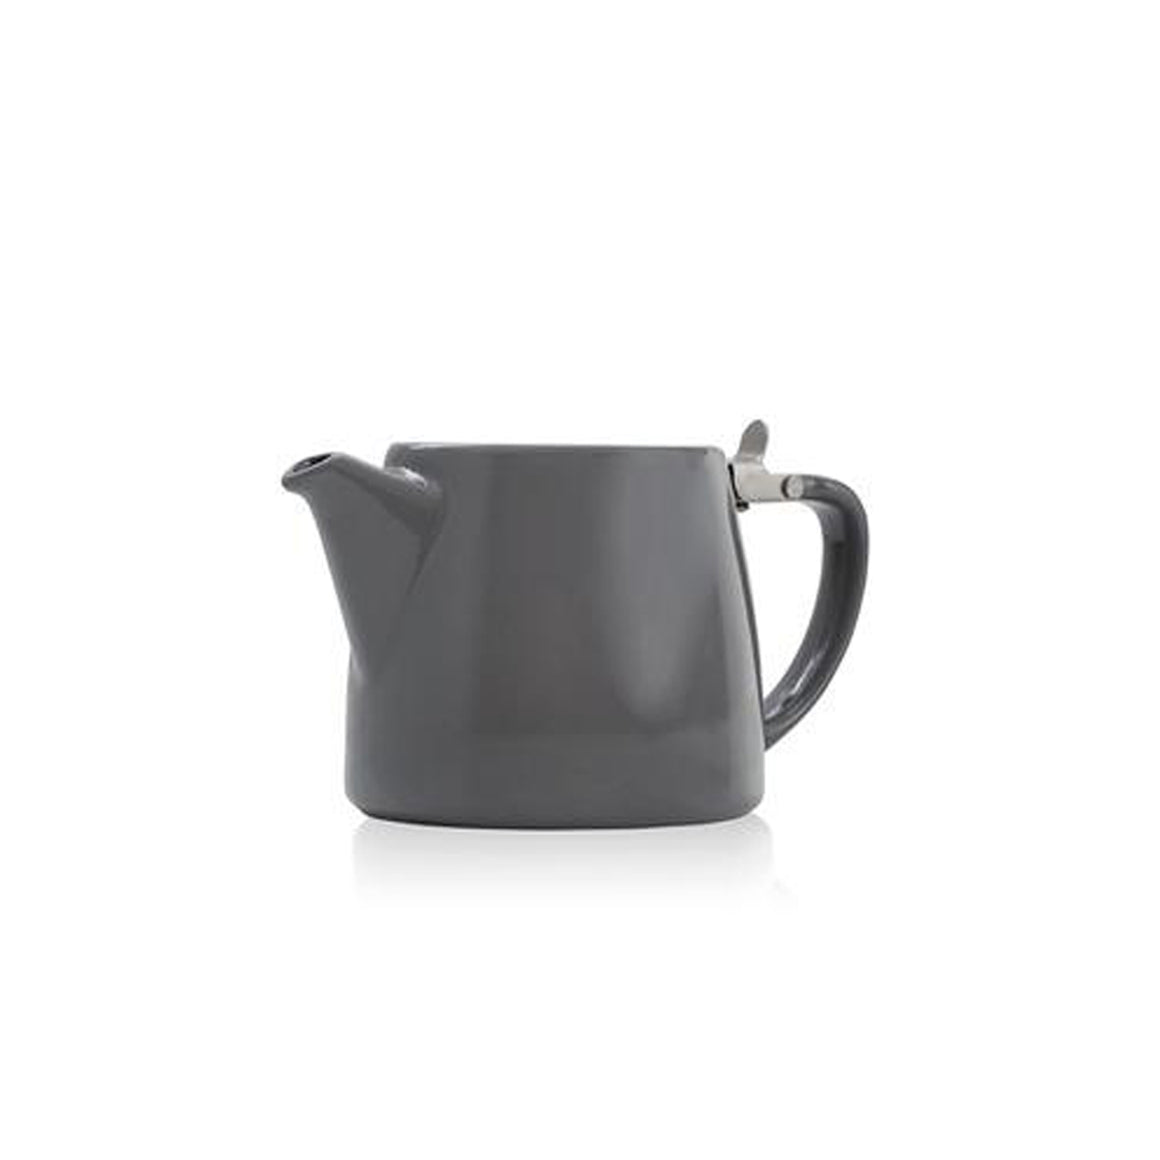 Forlife Grey Small Stump Teapot 13oz